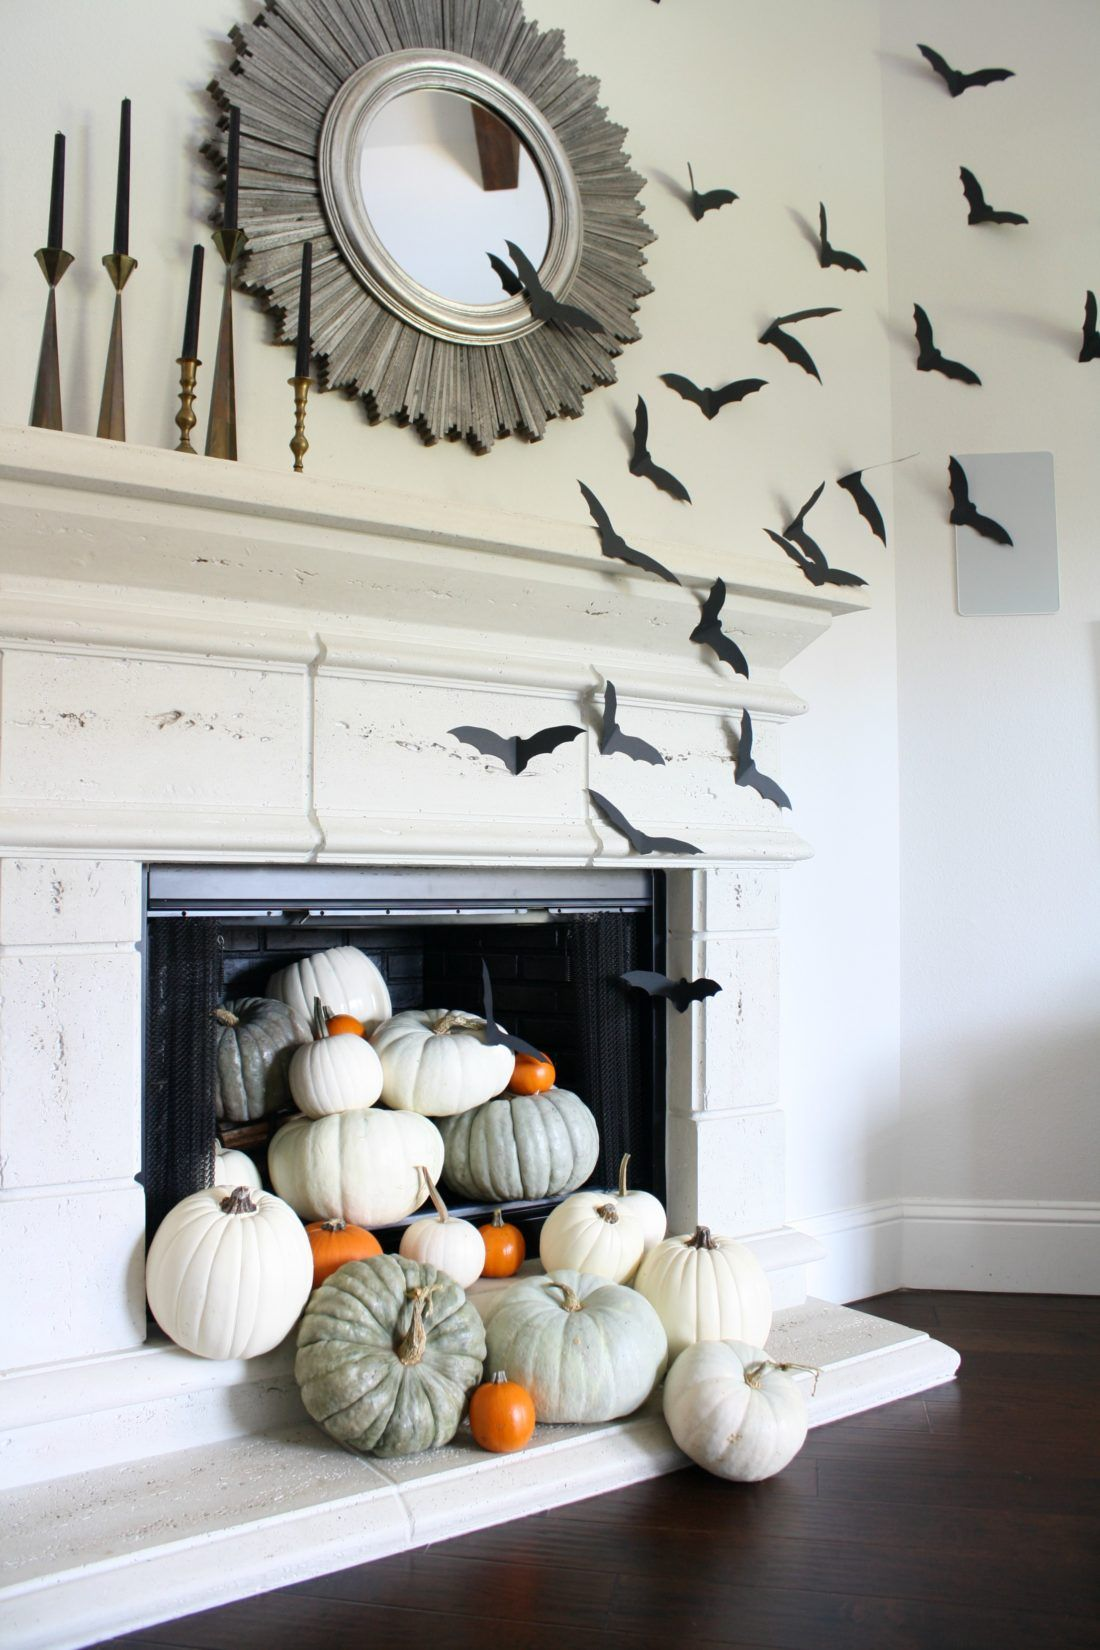 Simple Decorations Paper Bats Bat Decor Pumpkins In Fireplace Mantle Ideas